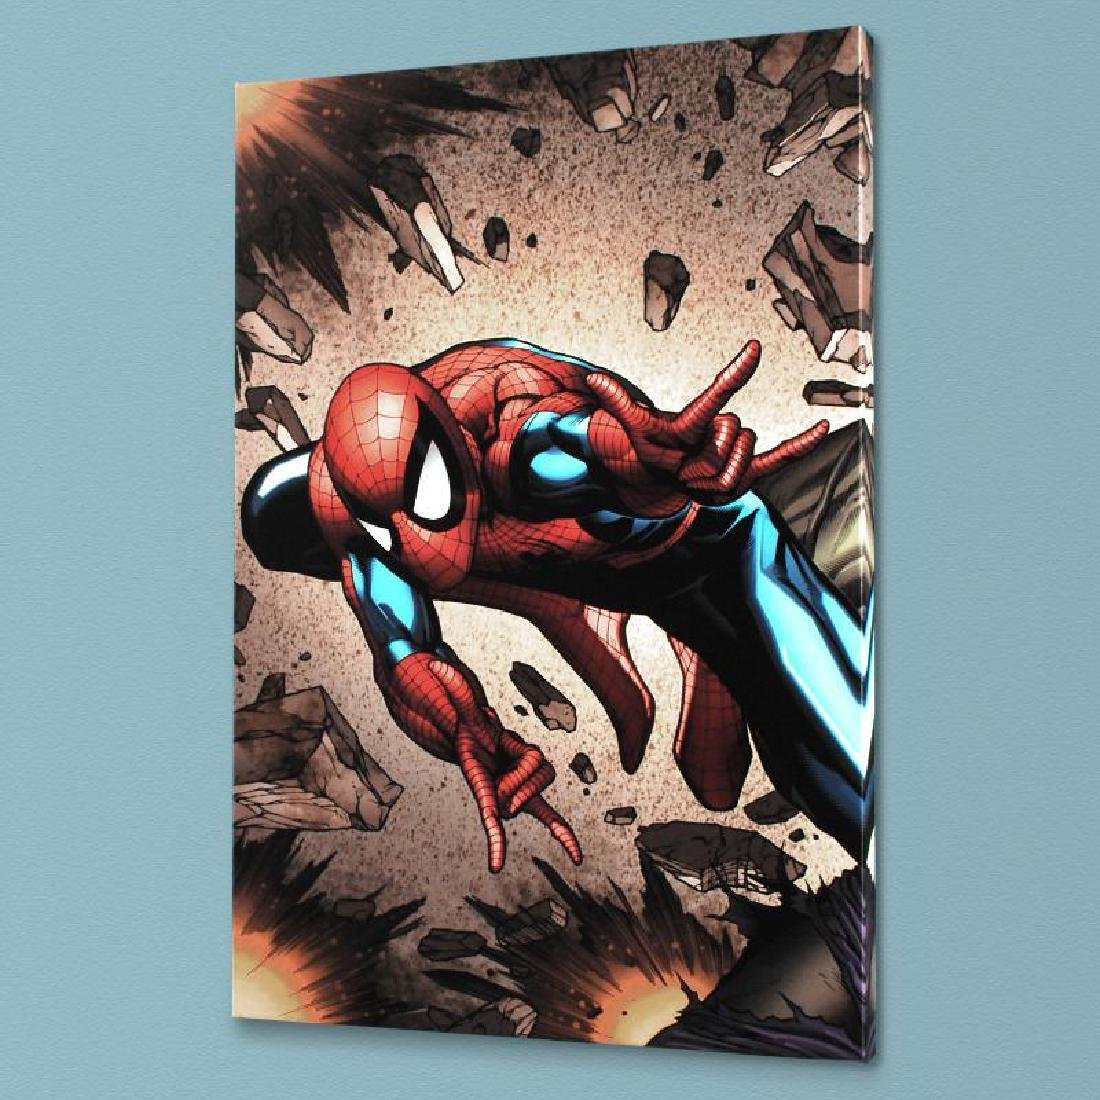 Amazing Spider-Man Annual #38 by Marvel Comics - 3